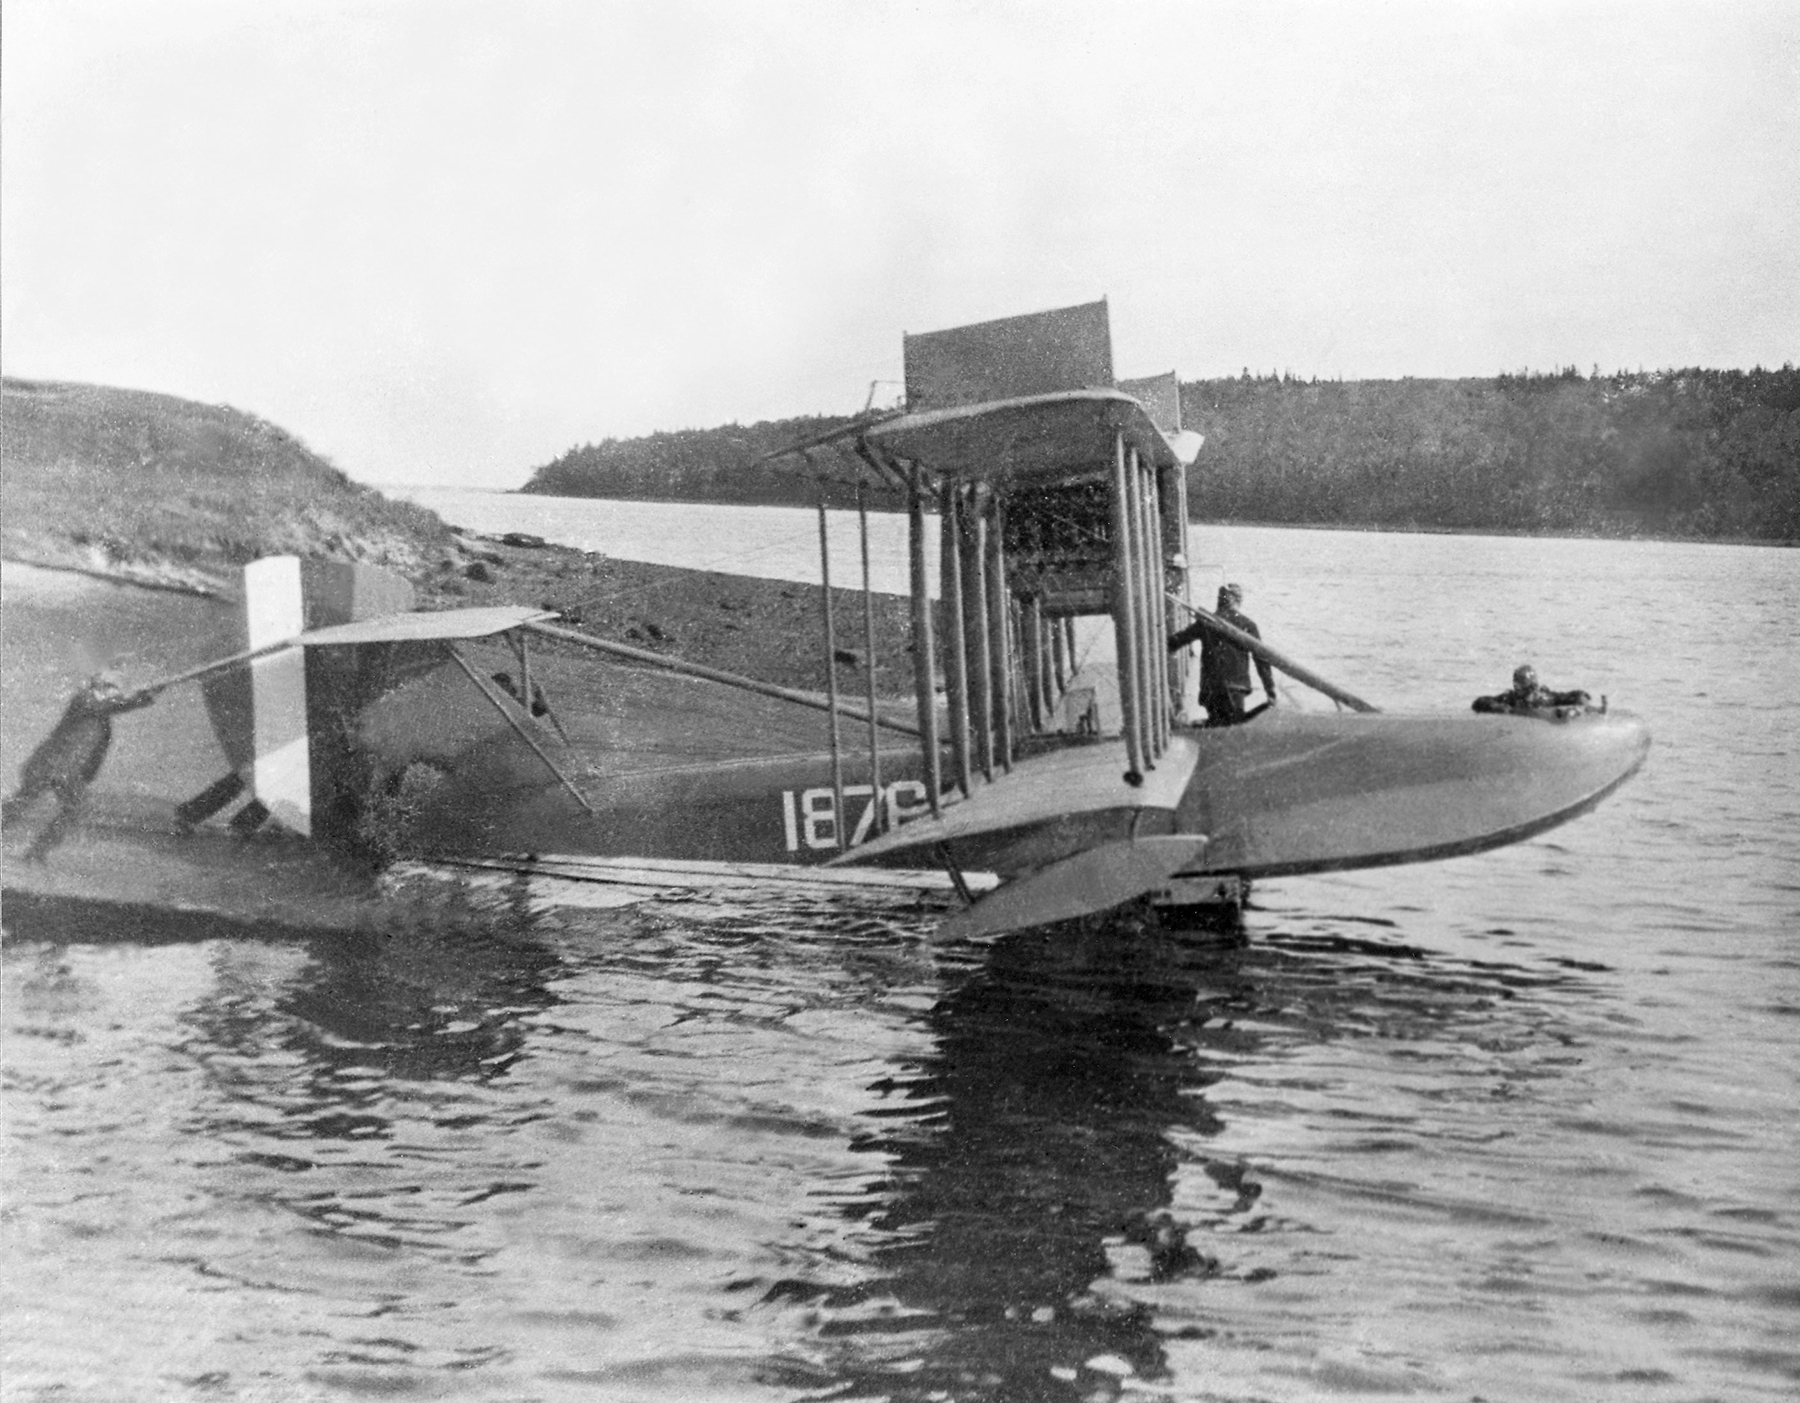 HS-2L Flying Boat No. 1876 at moorings off the Naval Air Station, Eastern Passage, Dartmouth, Nova Scotia, in spring 1919. This is one of 12 HS-2L Flying Boats operated by the United States Navy from bases at Halifax and Sydney, Nova Scotia. PHOTO: DND Archives, CN-6508